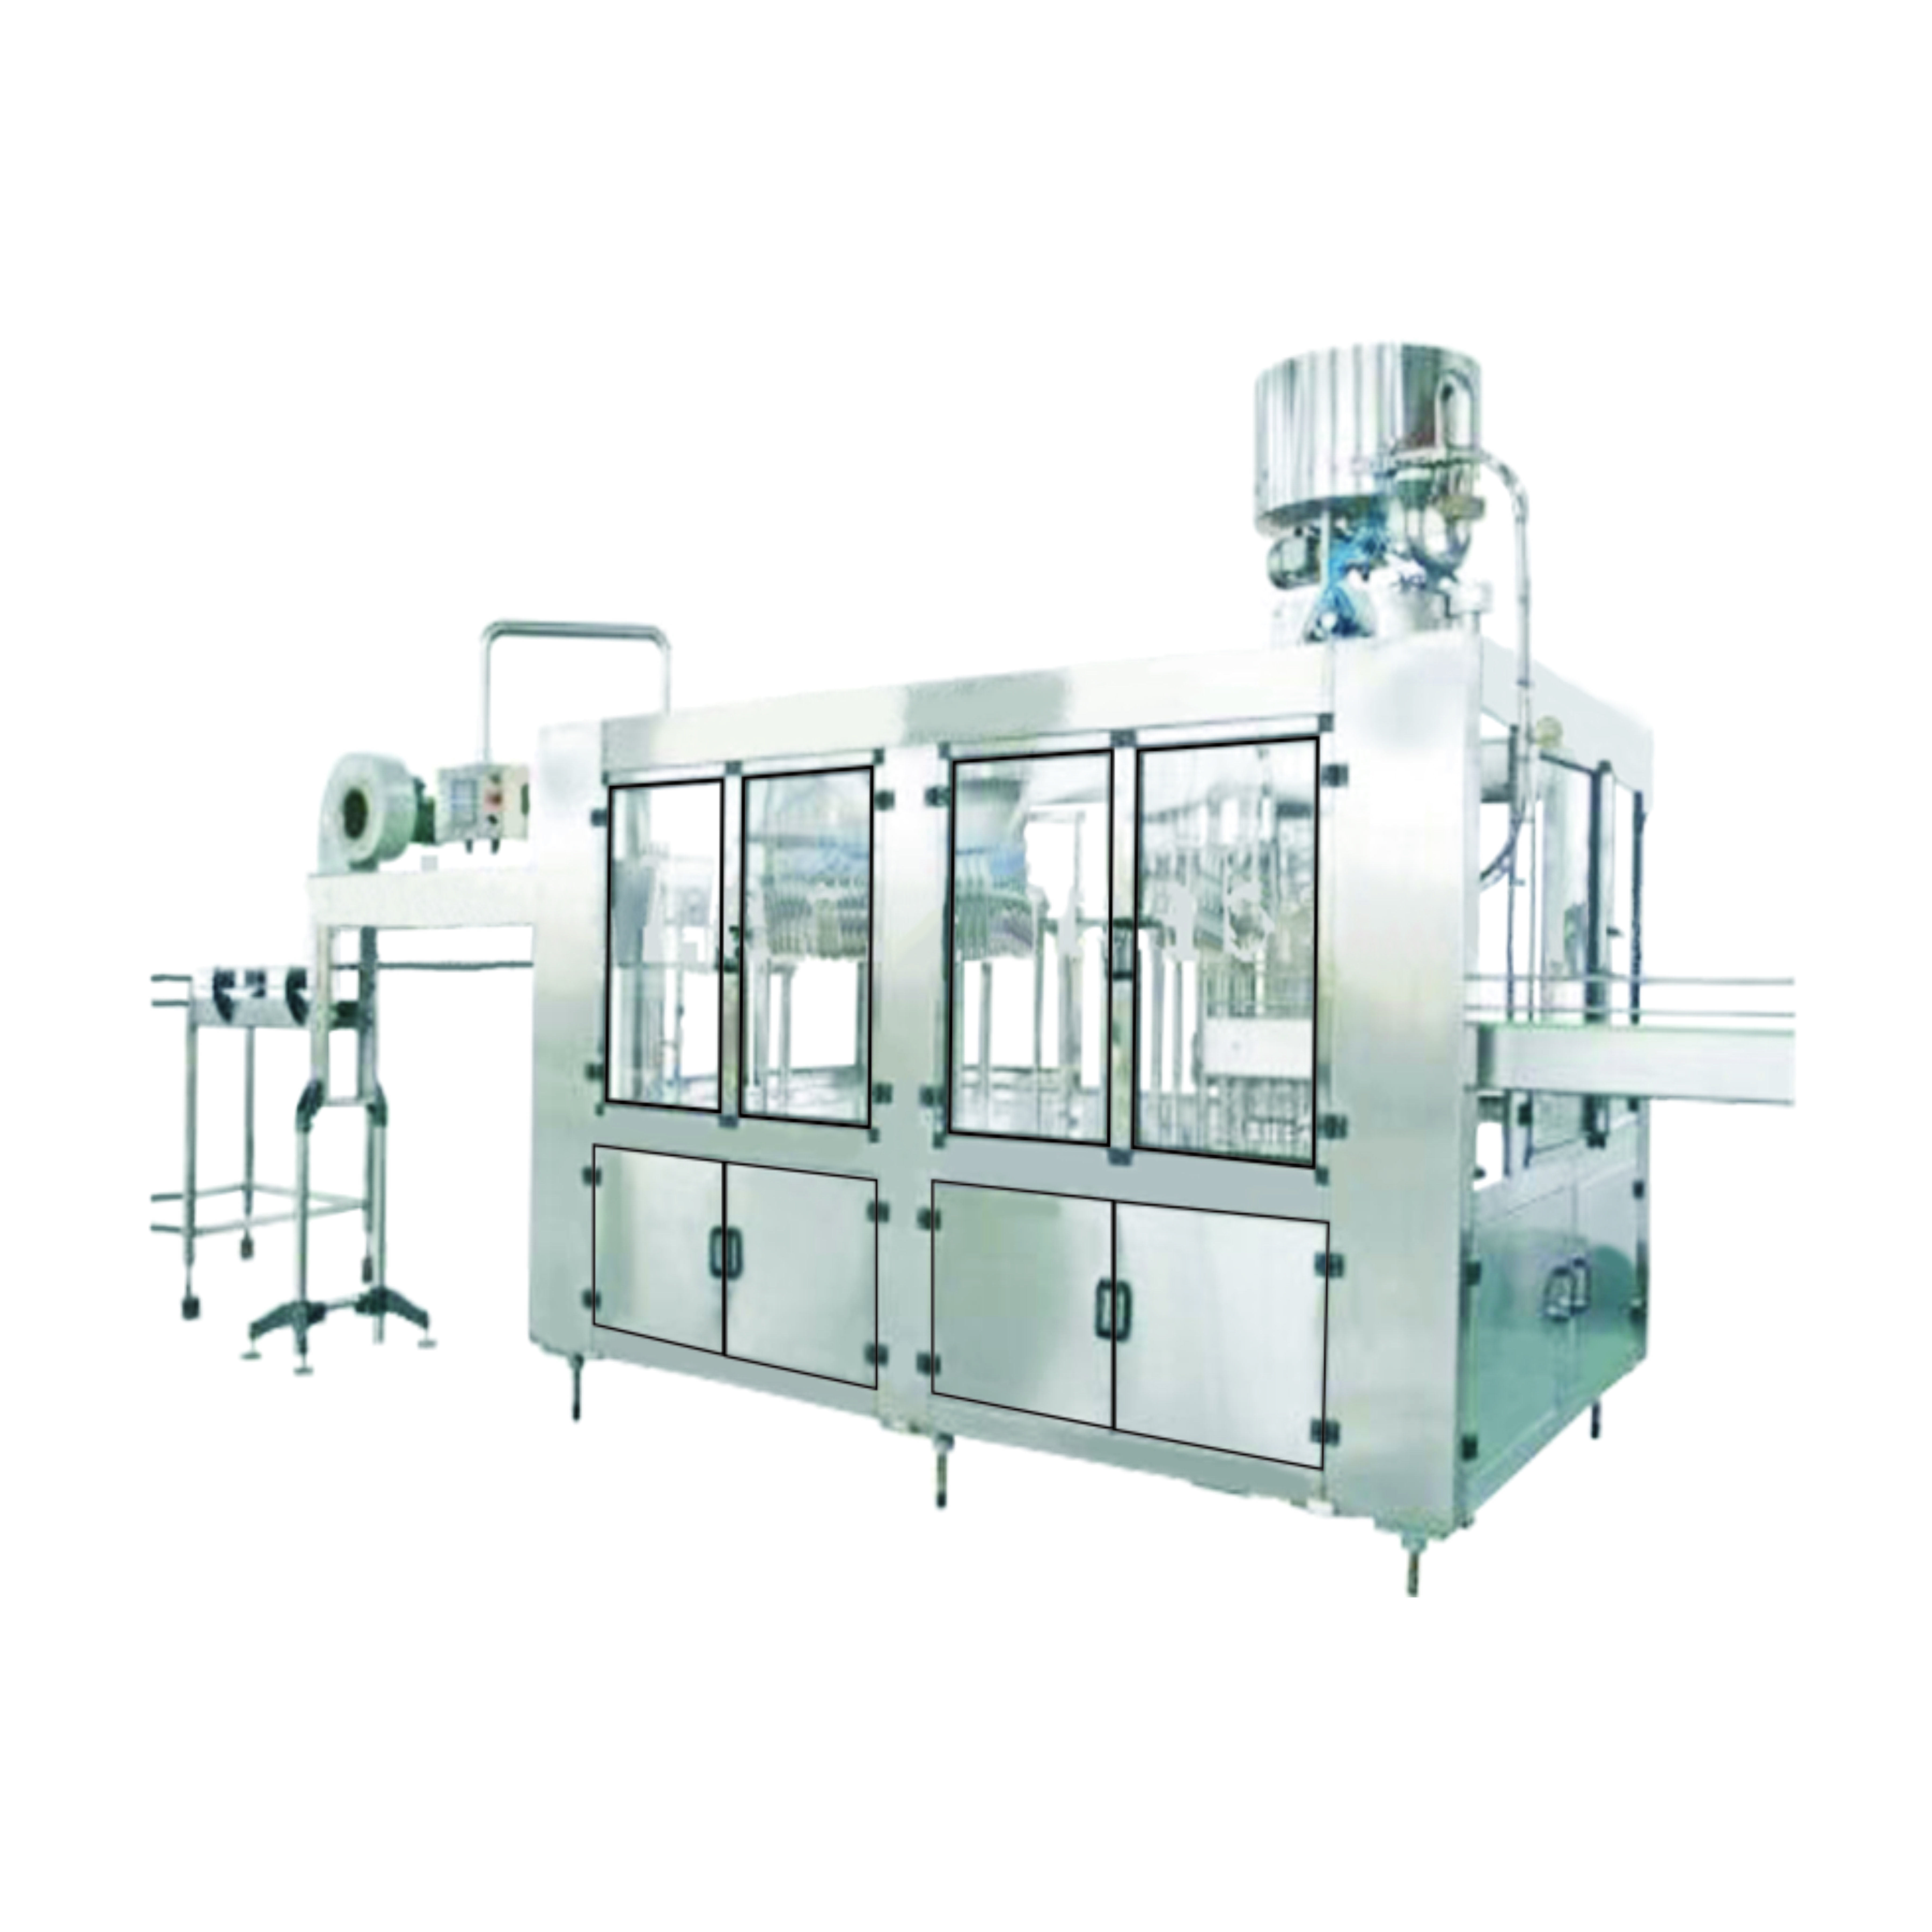 Packaged Drinking Water Plant - Manufacturer,Supplier,Exporter